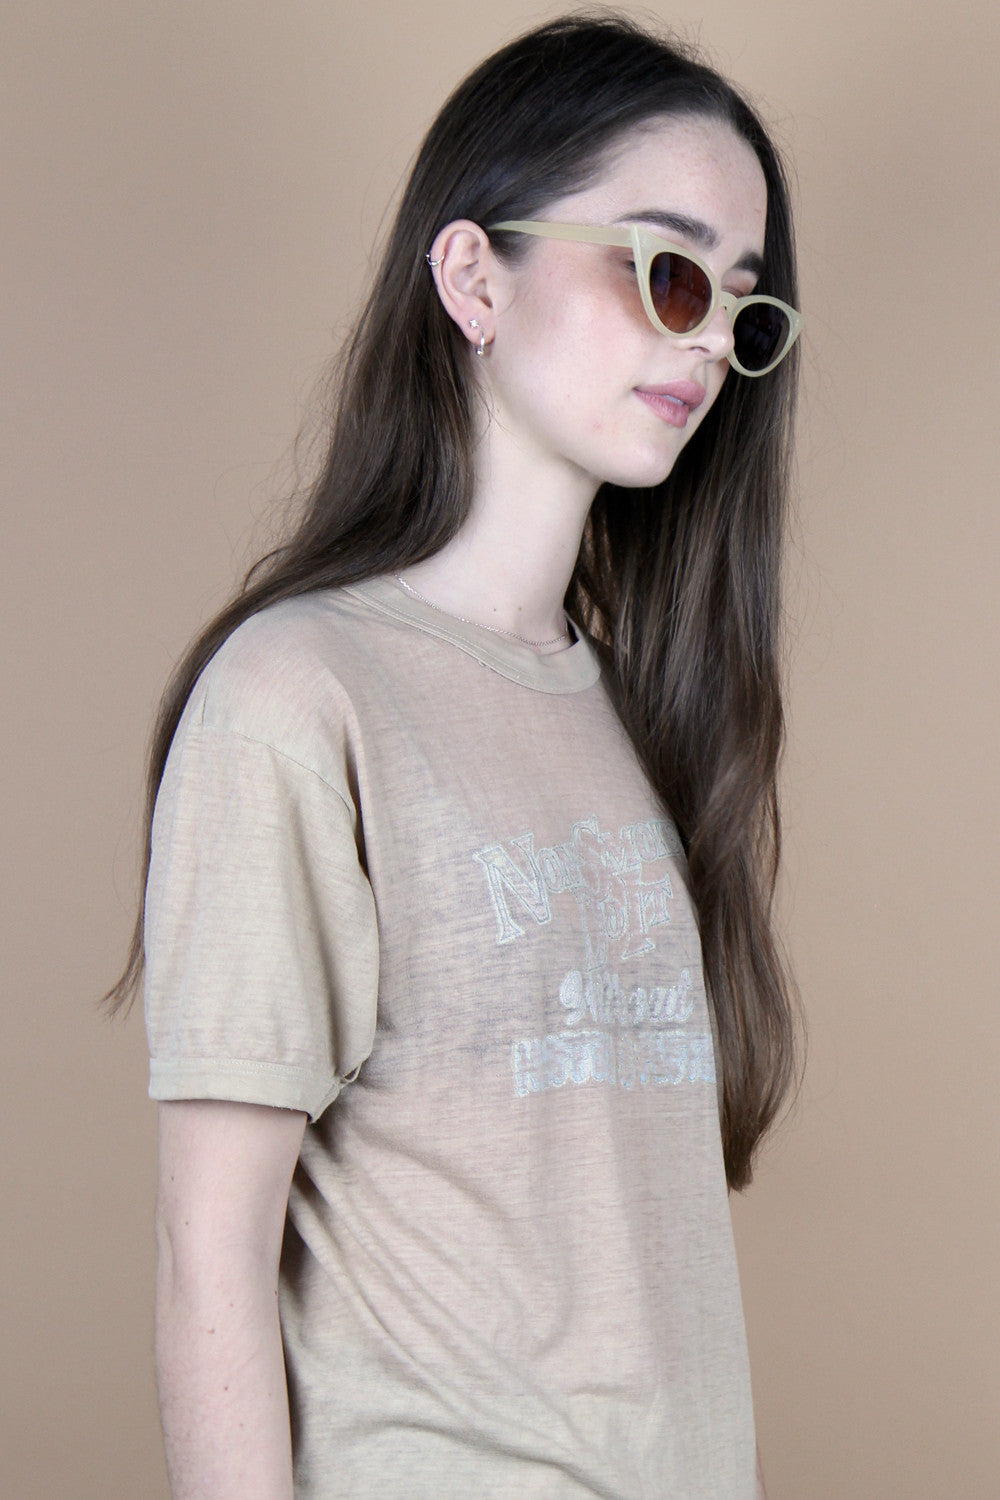 Original 1970s Tissue Thin T-shirt